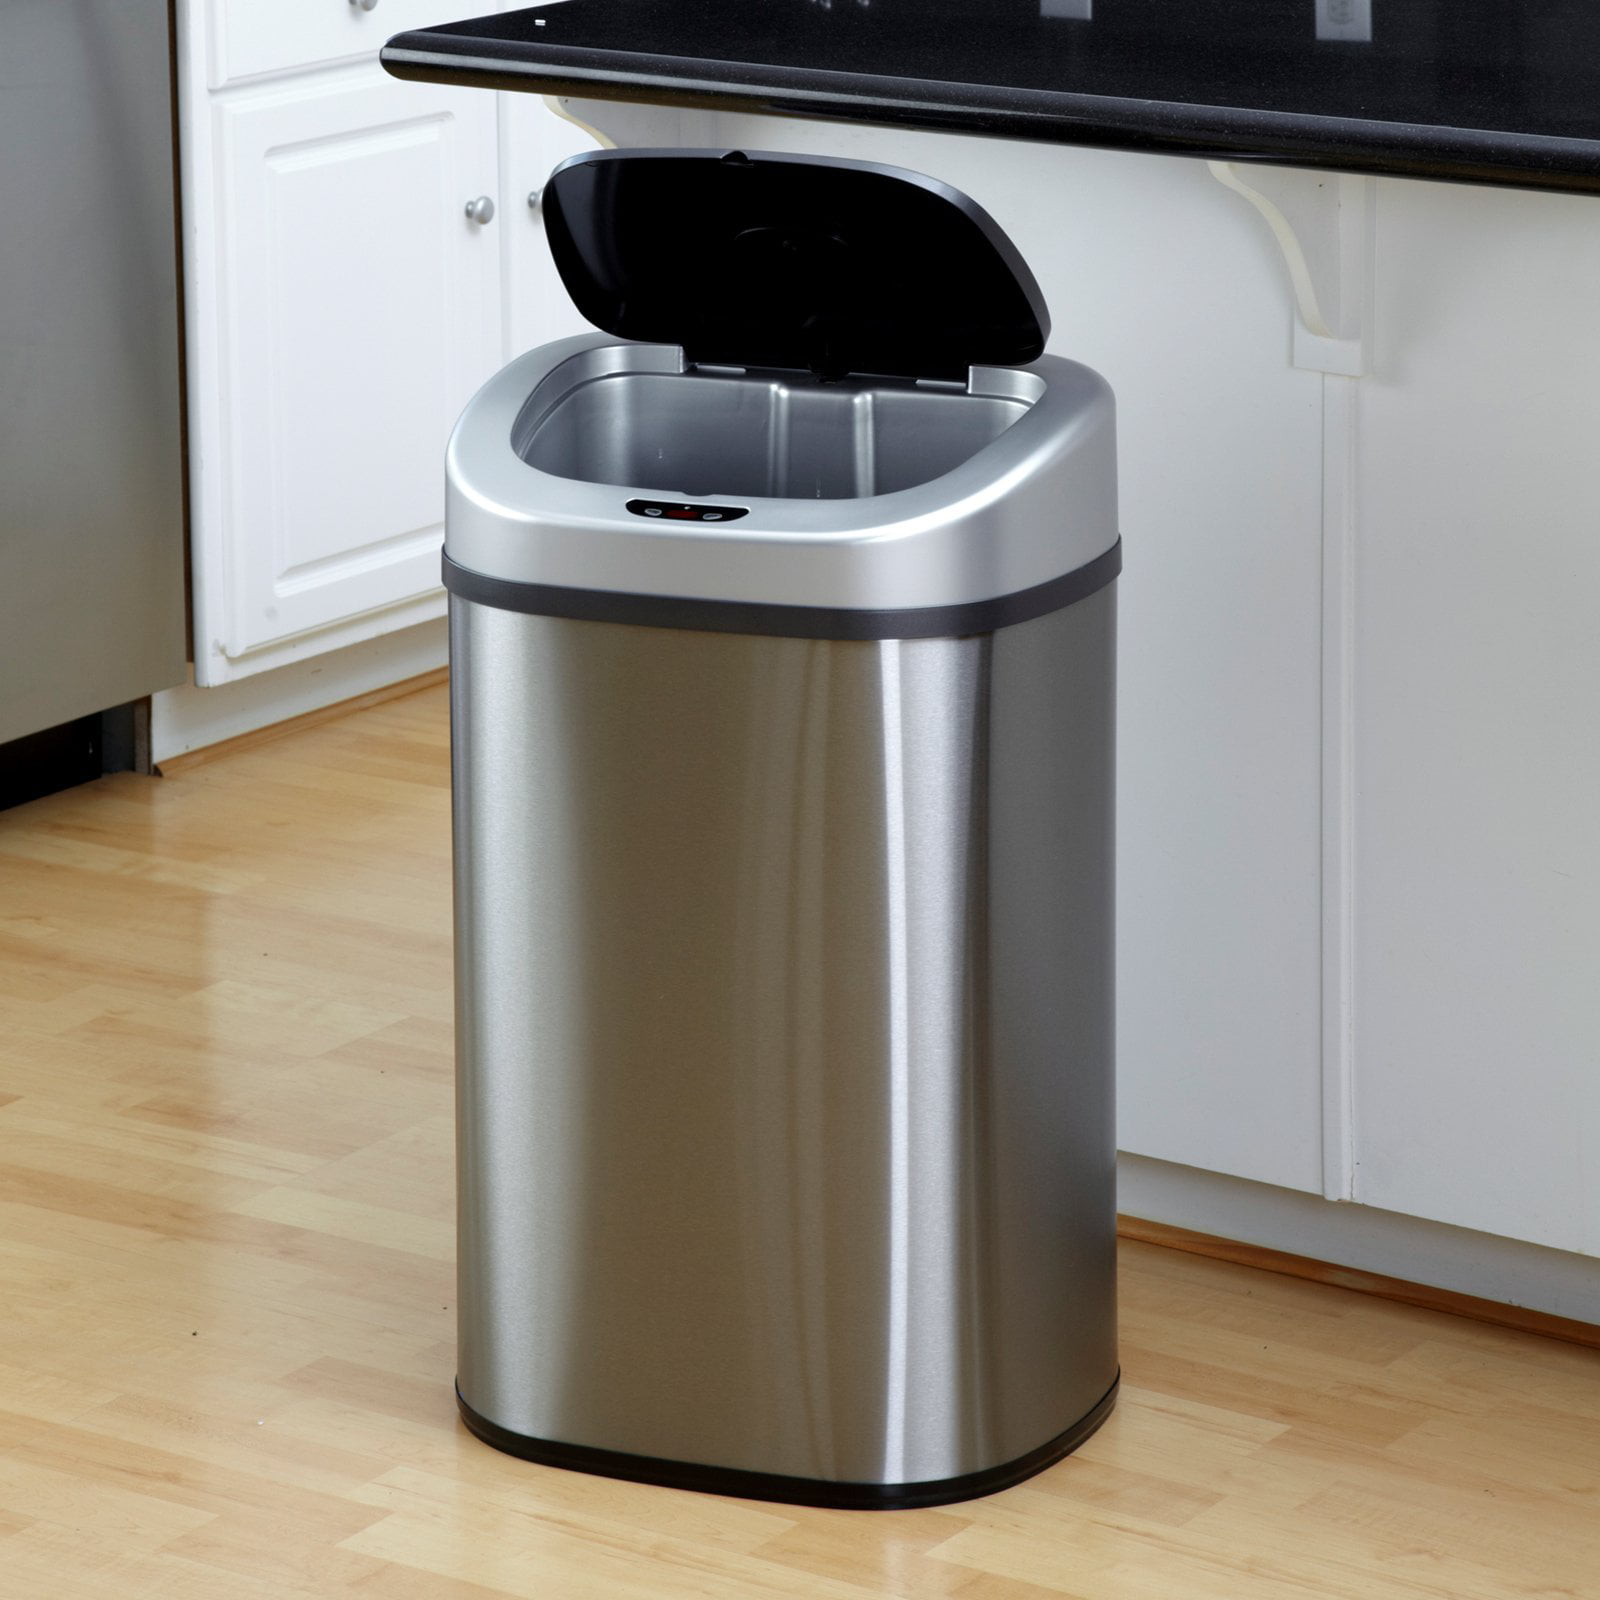 iTouchless 13 Gallon Stainless Steel Automatic Trash Can with Odor Control Syste